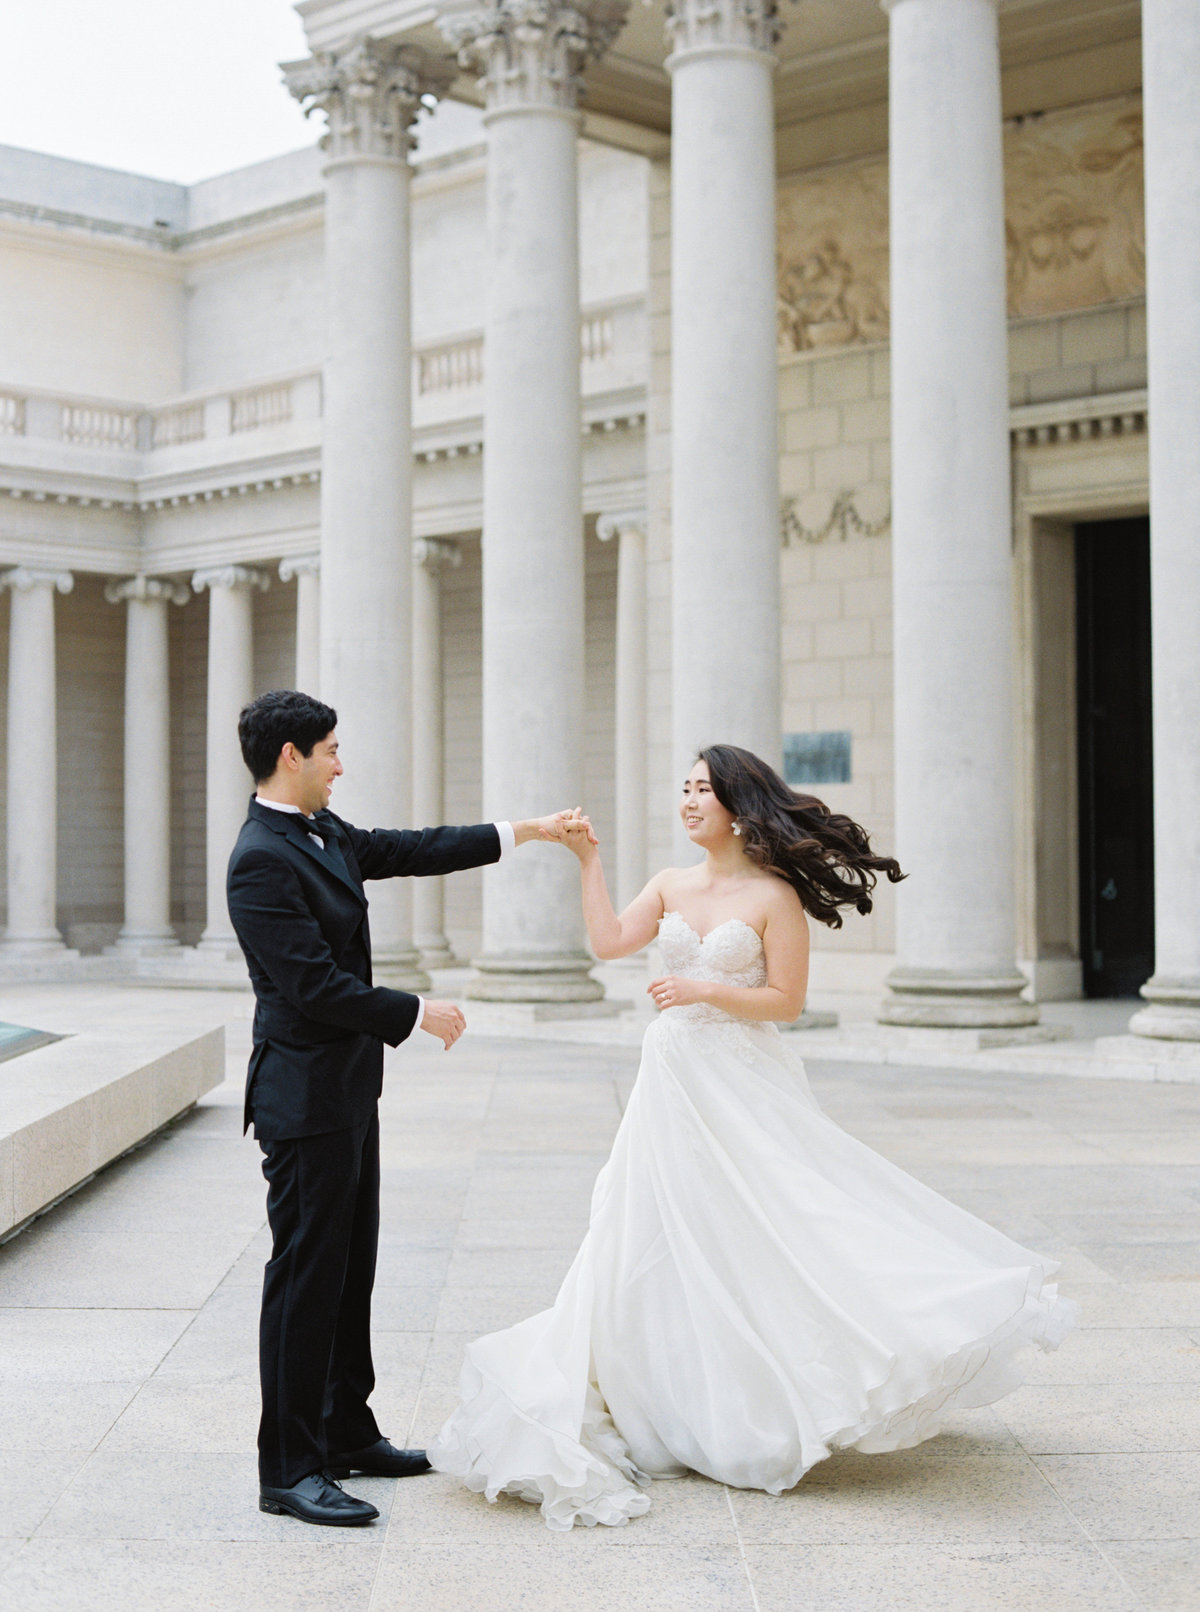 Diana + Pablo San Francisco California Legion of Honor Museum Wedding Session | Cassie Valente Photography 0054